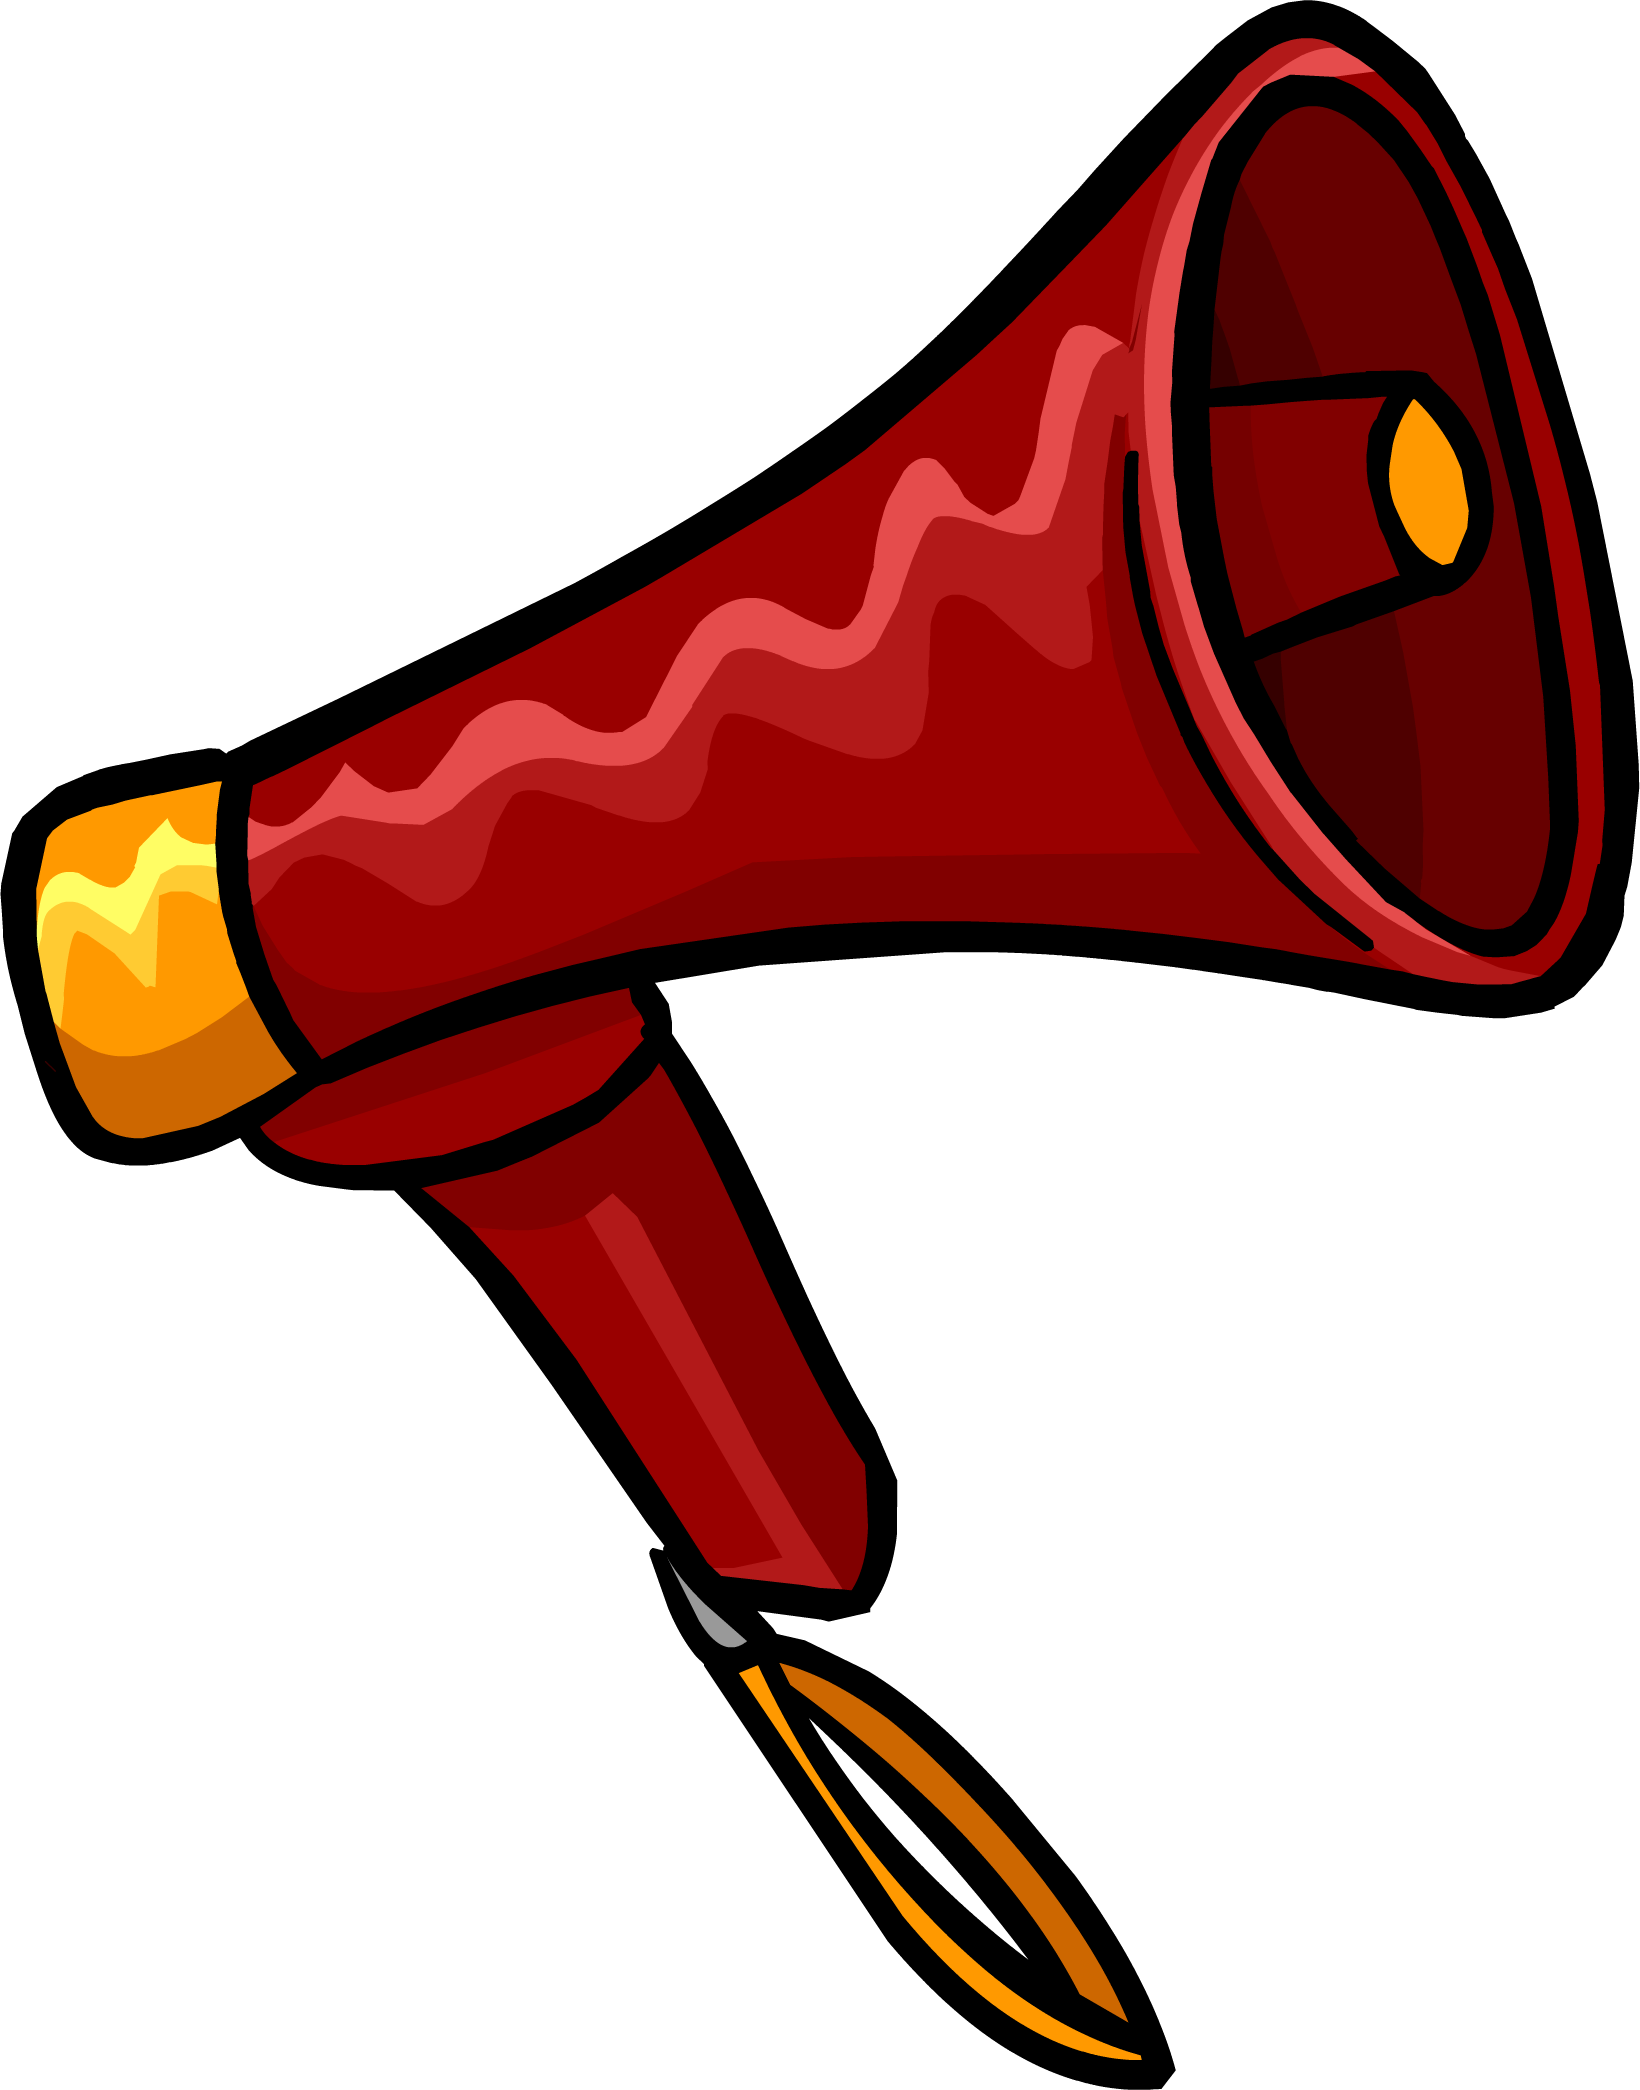 Red megaphone png. Image club penguin wiki